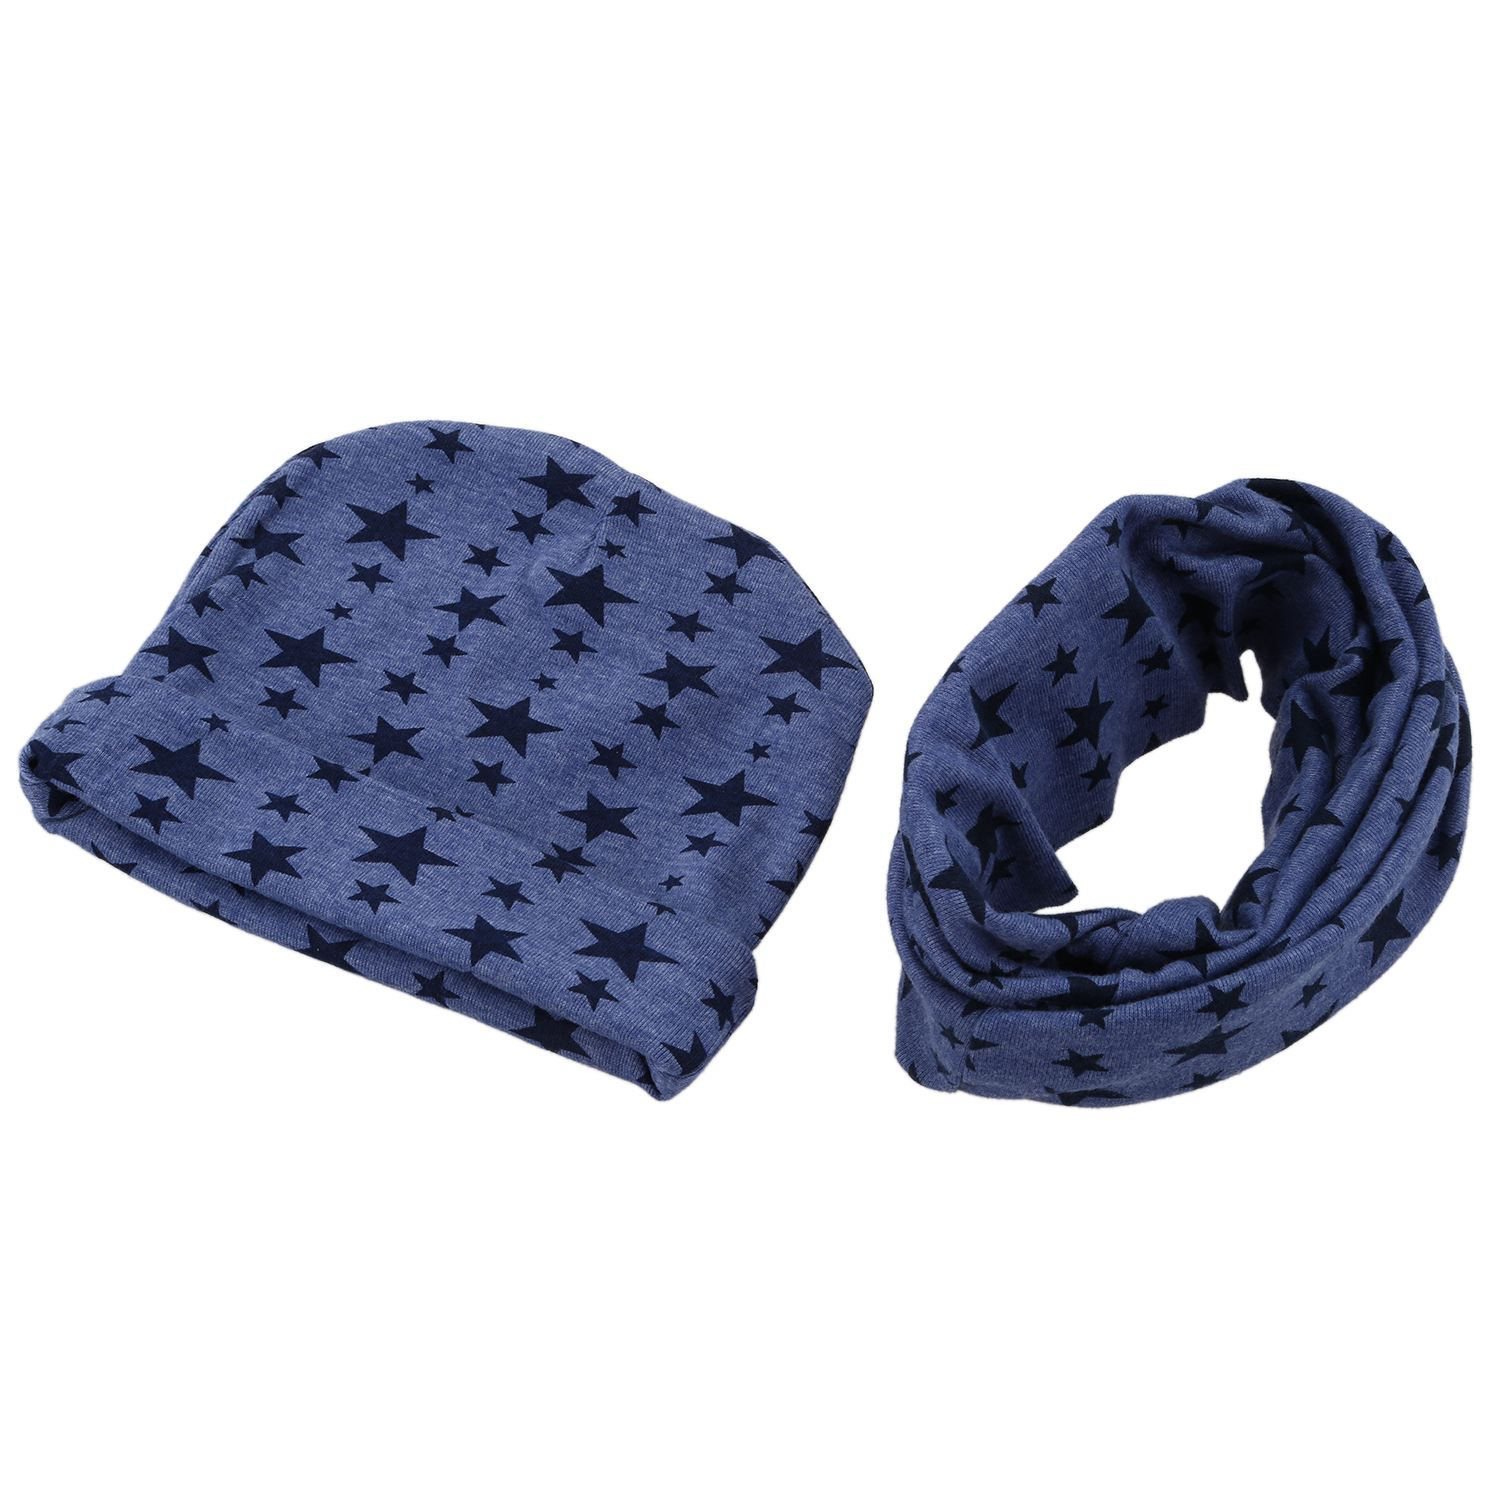 2018 New Baby Hat and Scarf Set, Beanie Hat with Snood Scarf Neck Warmer for Infant Kids